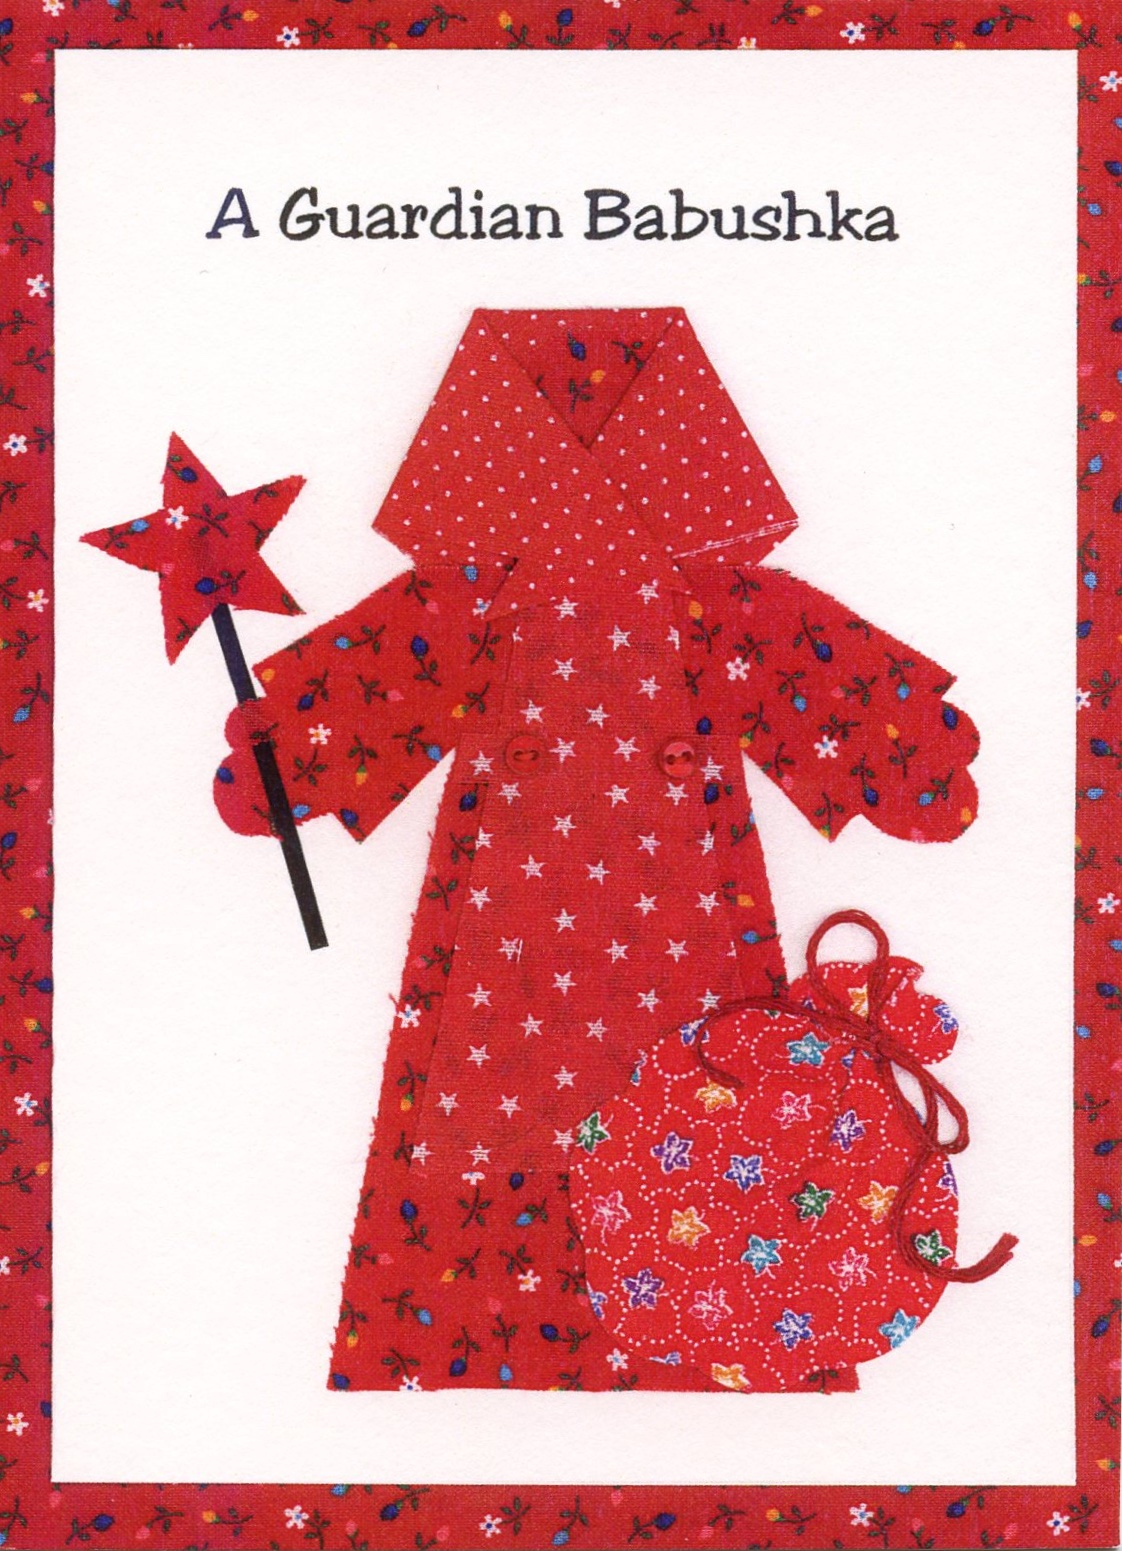 A Guardian Babushka-KariCates.jpg